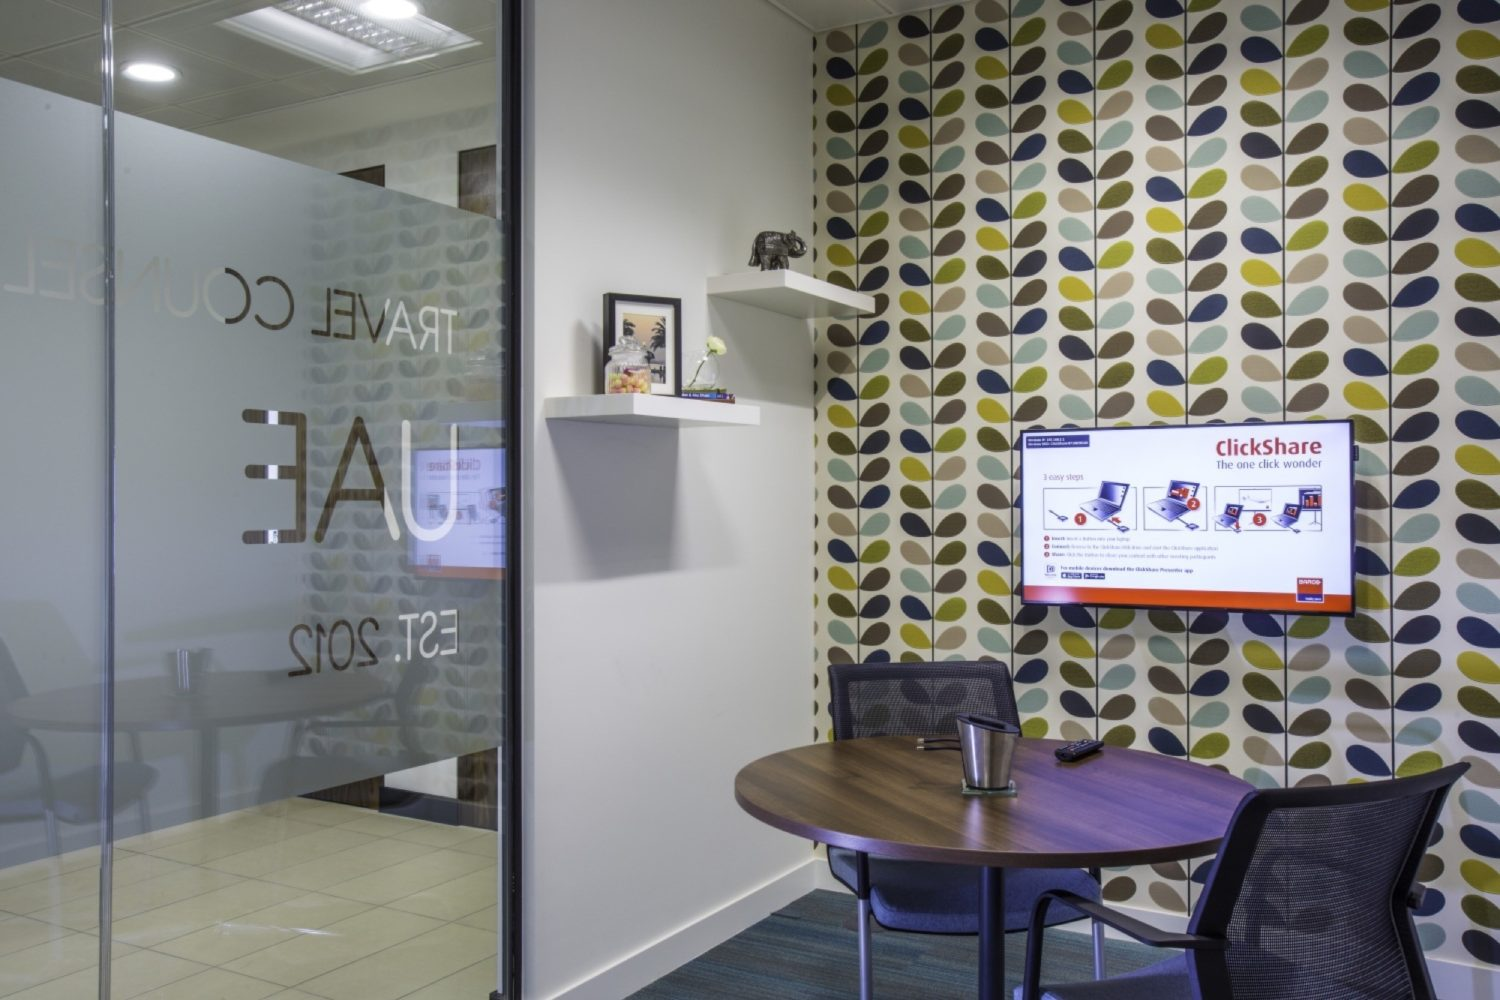 Travel Counsellors meeting space design